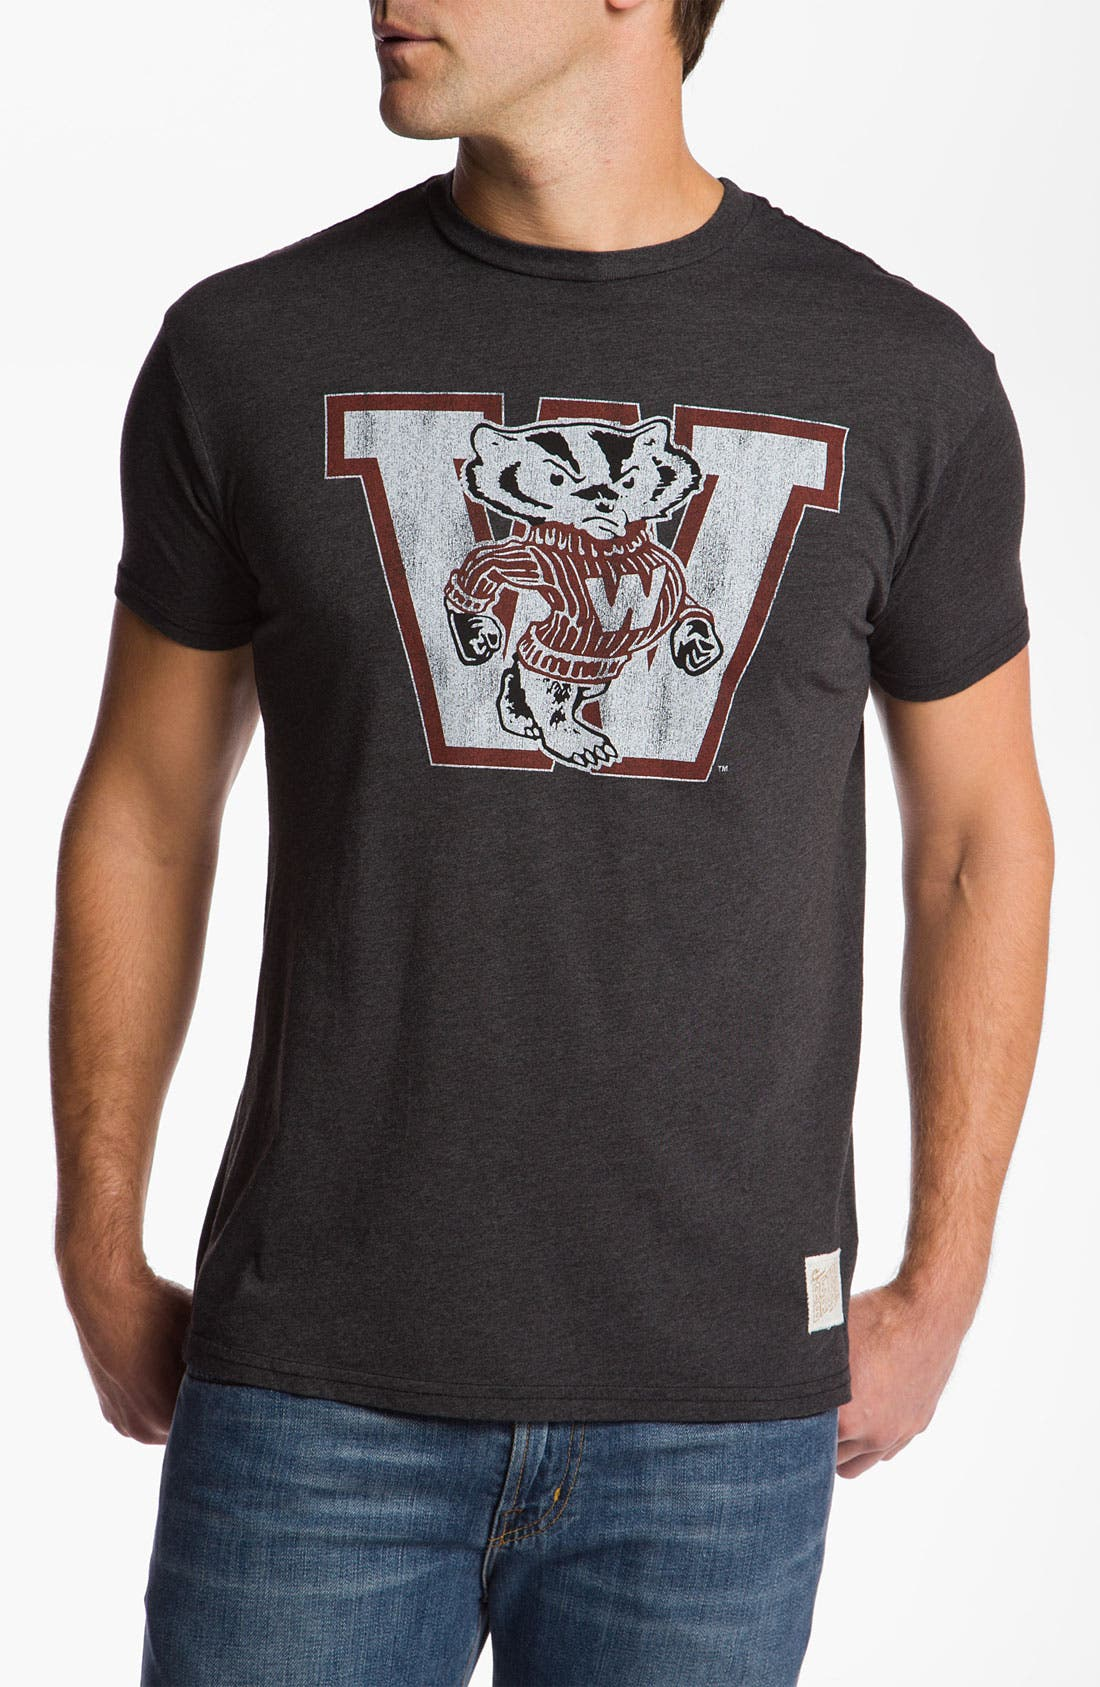 Alternate Image 1 Selected - The Original Retro Brand 'Wisconsin Badgers' T-Shirt